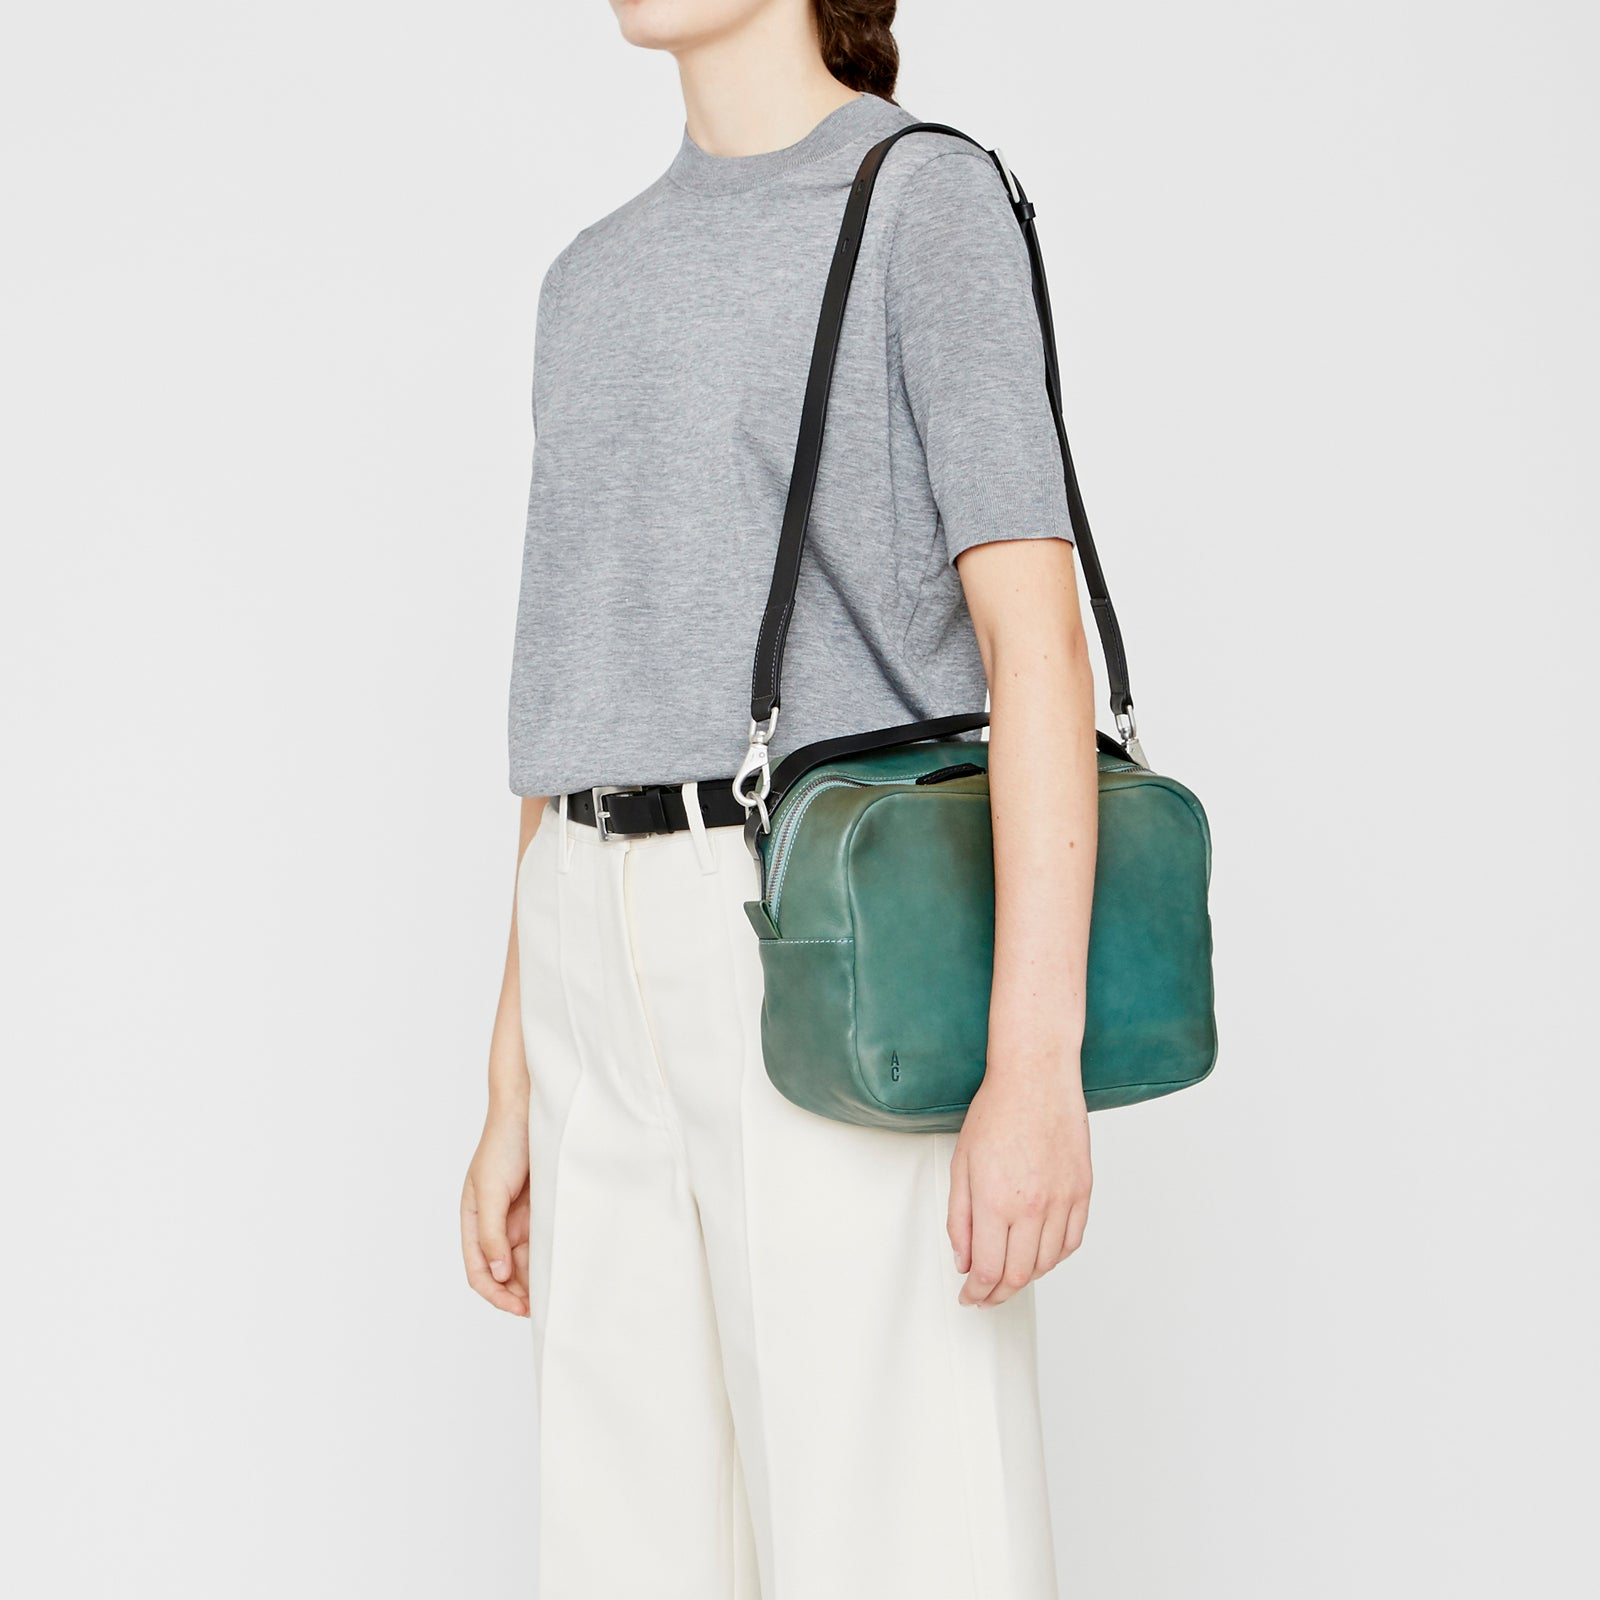 Leila Large Vegetable Tanned Leather Crossbody Bag in Mint – Ally ... 97f04e7a1c